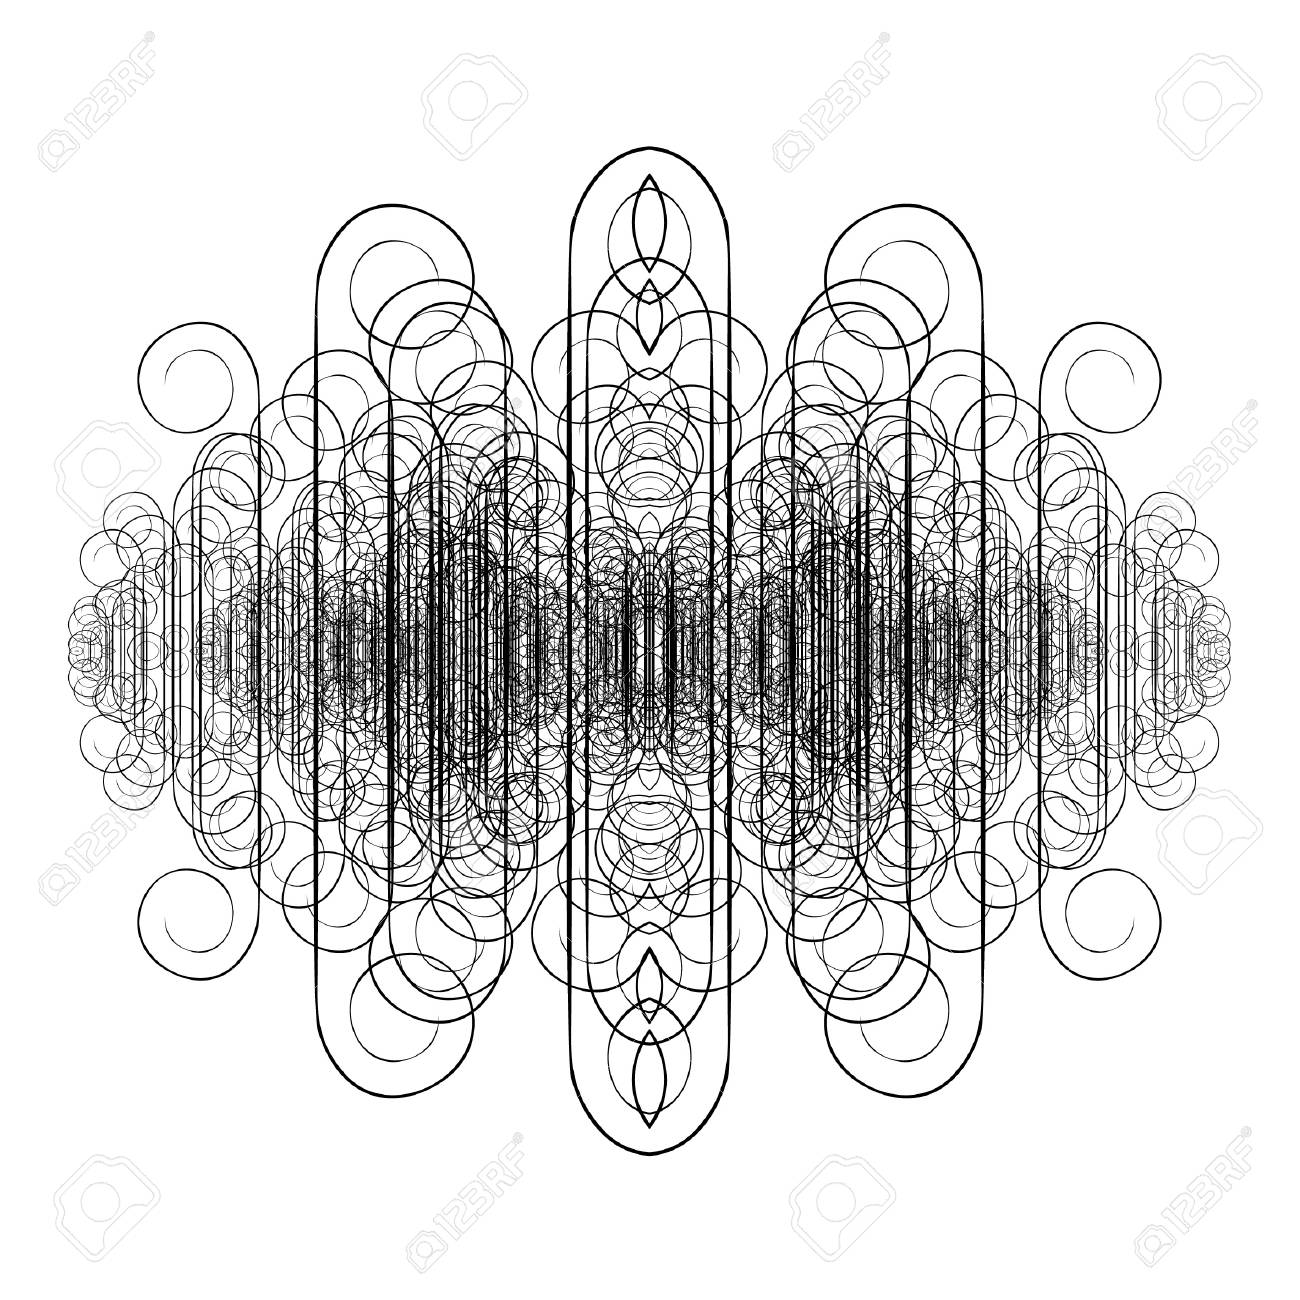 Design of creative decorative element Stock Vector - 9908287